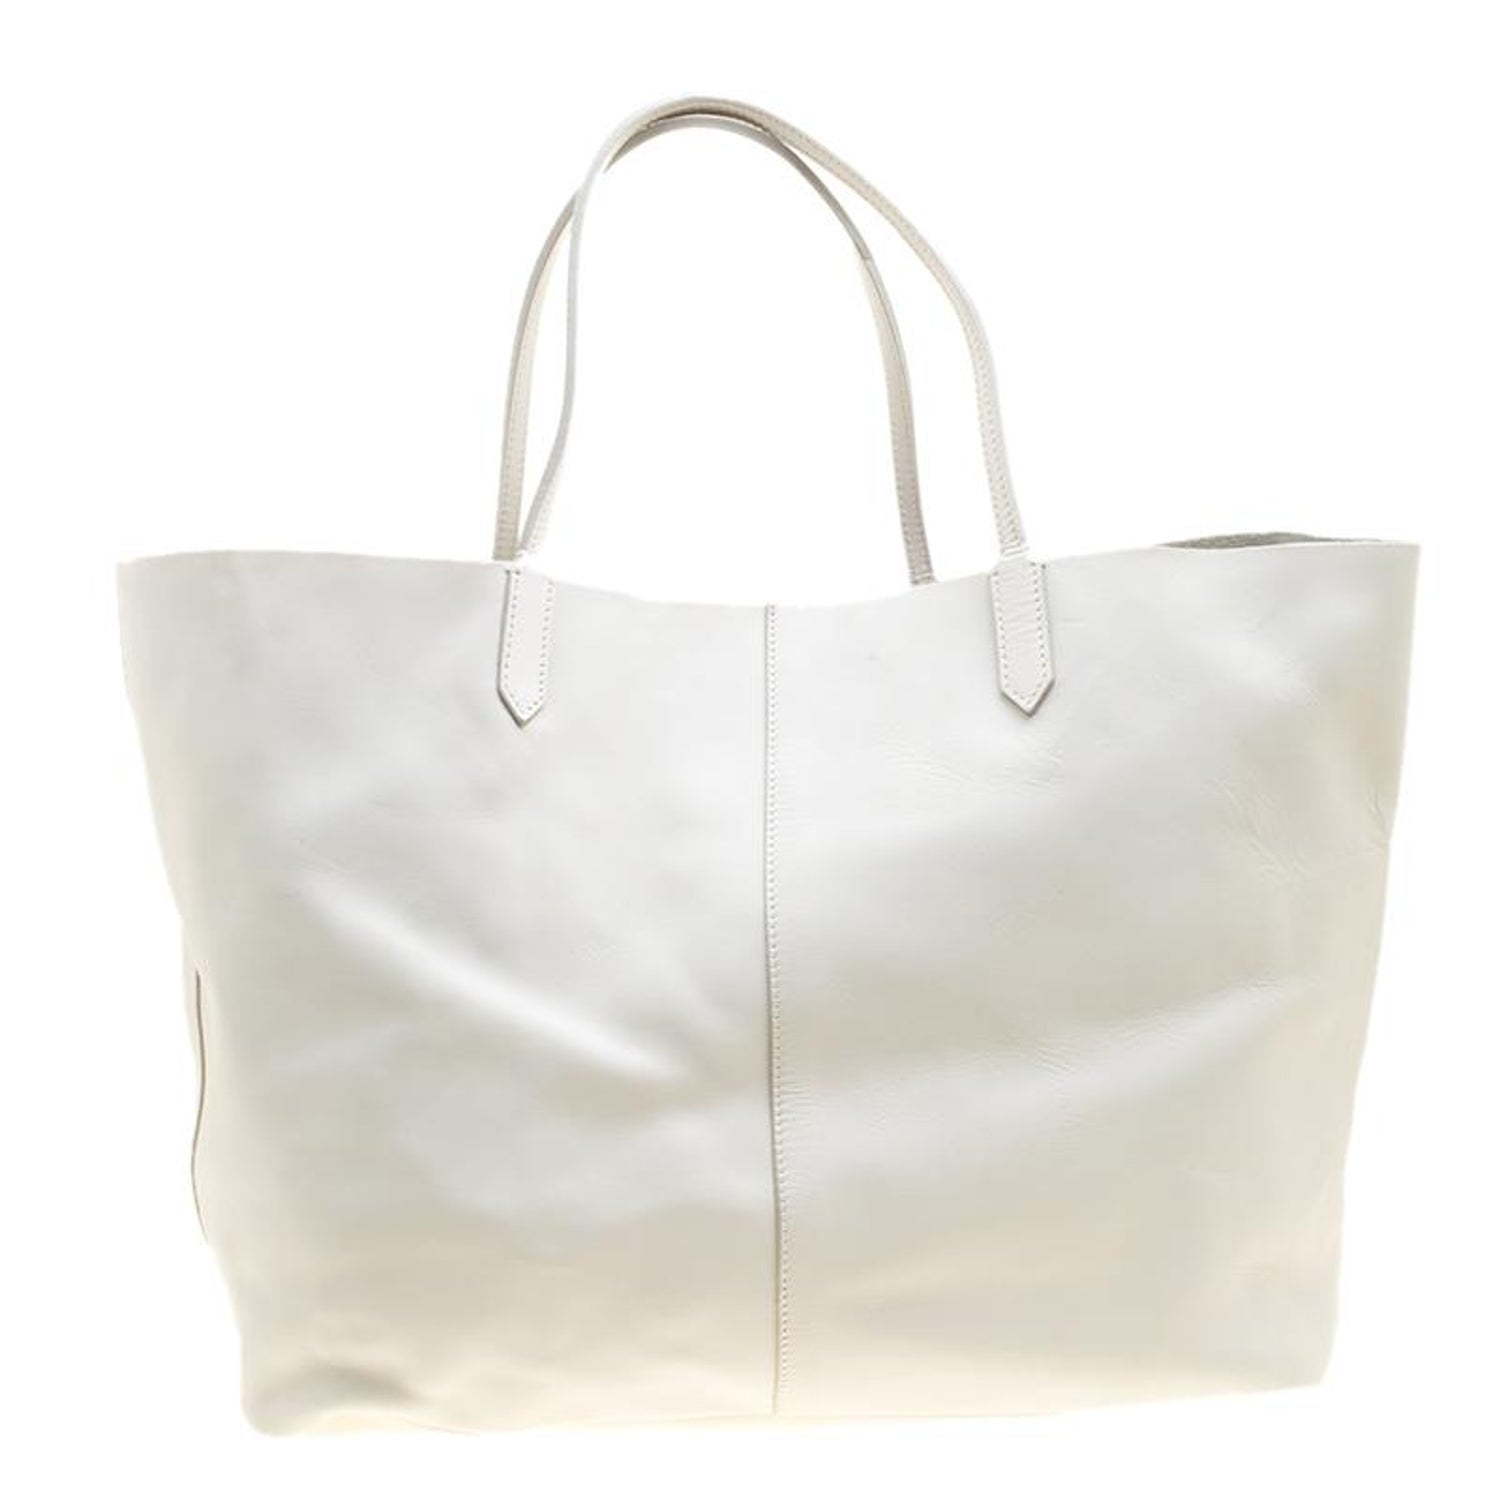 69292ce74fd5 Givenchy Off White Leather Large Antigona Shopping Tote For Sale at 1stdibs